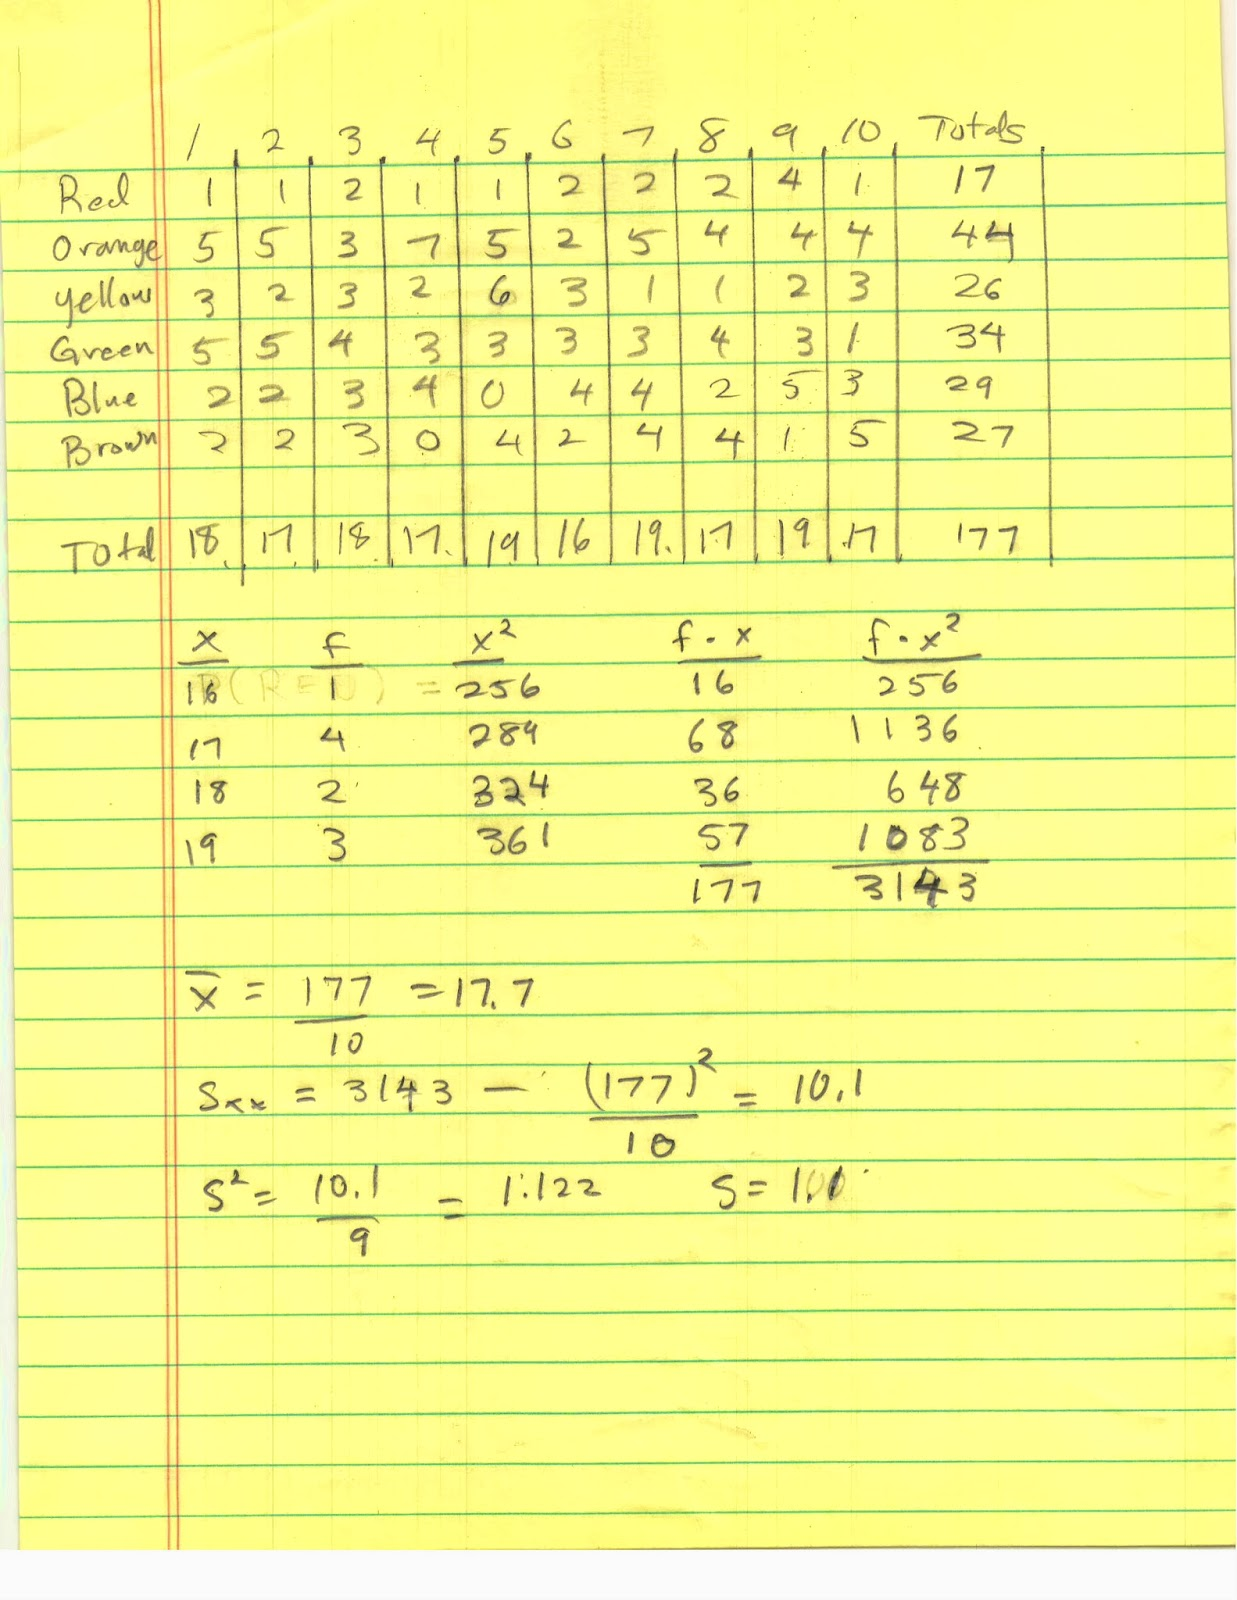 17 Times Table Notice that in his table only